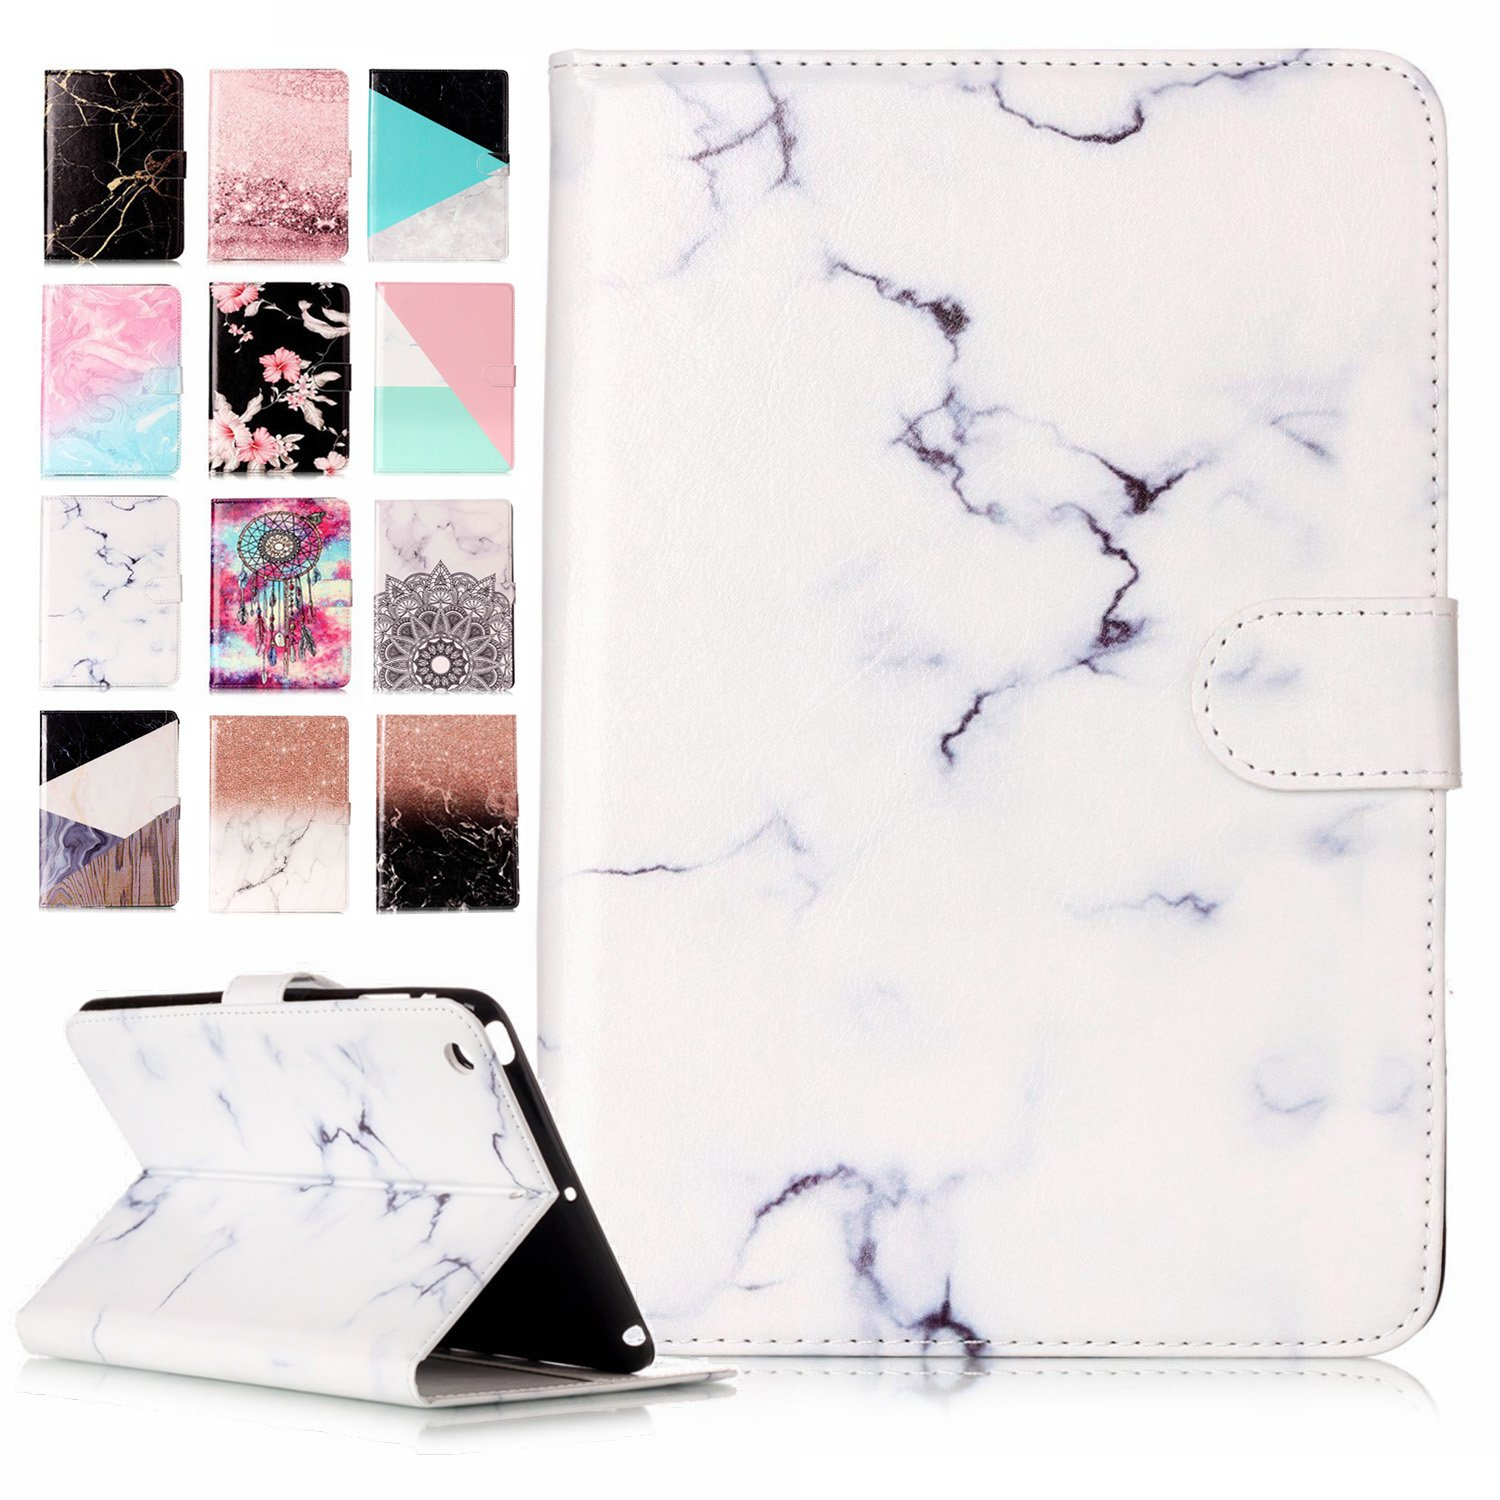 Samsung Galaxy Tab A6 10.1 Inch T580N T585N Case White, LA-Otter PC Tablet Samsung Galaxy Tab A SM-T580/T585 (2016) Leather Case Marble Flip Cover Protective Smart Wallet Case 360 Full Body Protection + TPU Silicon Gel Rubber Bumper Back Cover Folio Shock